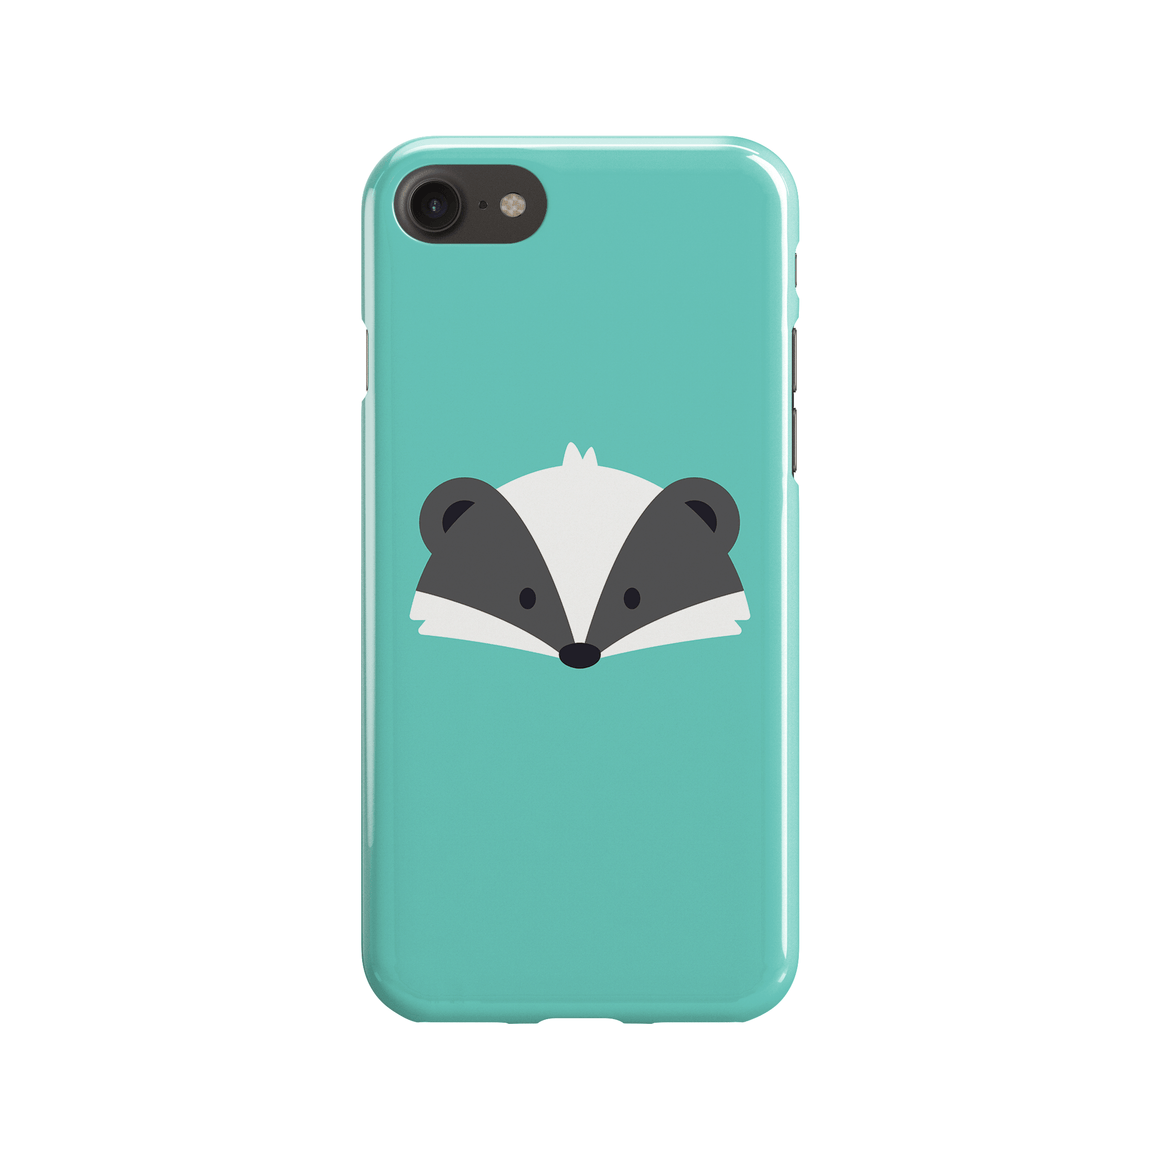 Badger Phone Case - Premium Artwear Curartee